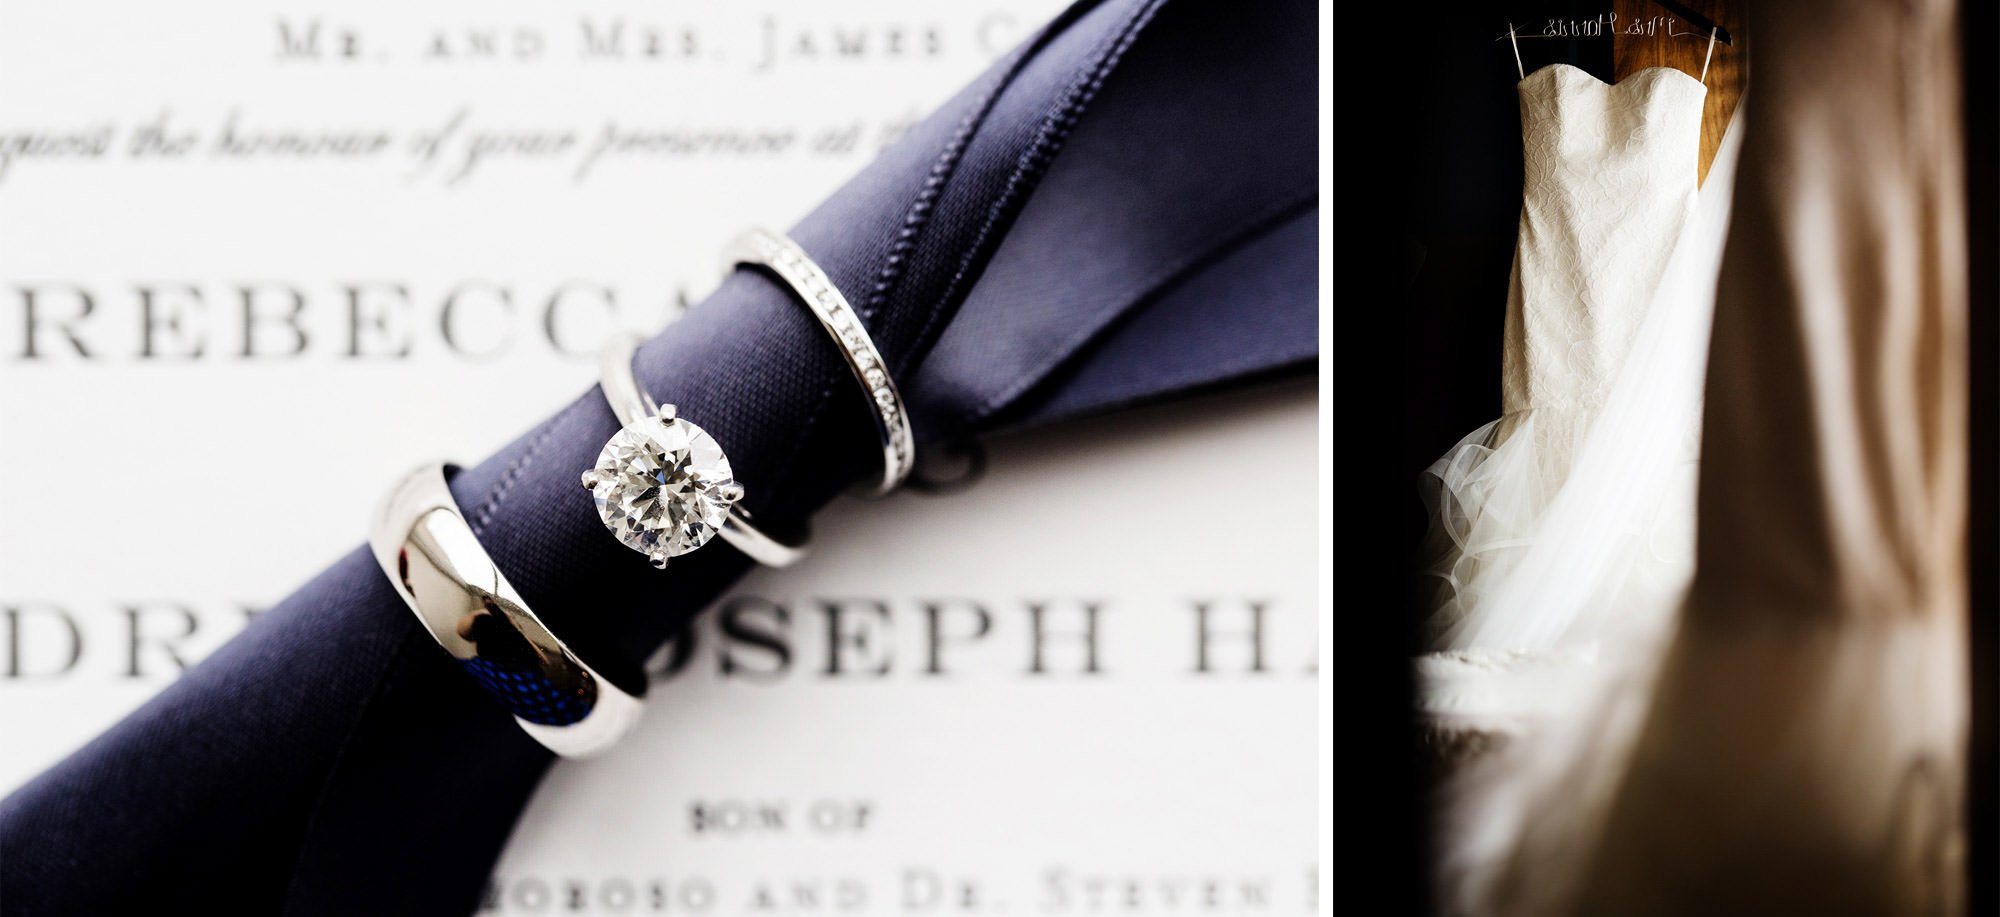 Details of the bride's wedding dress and engagement ring.